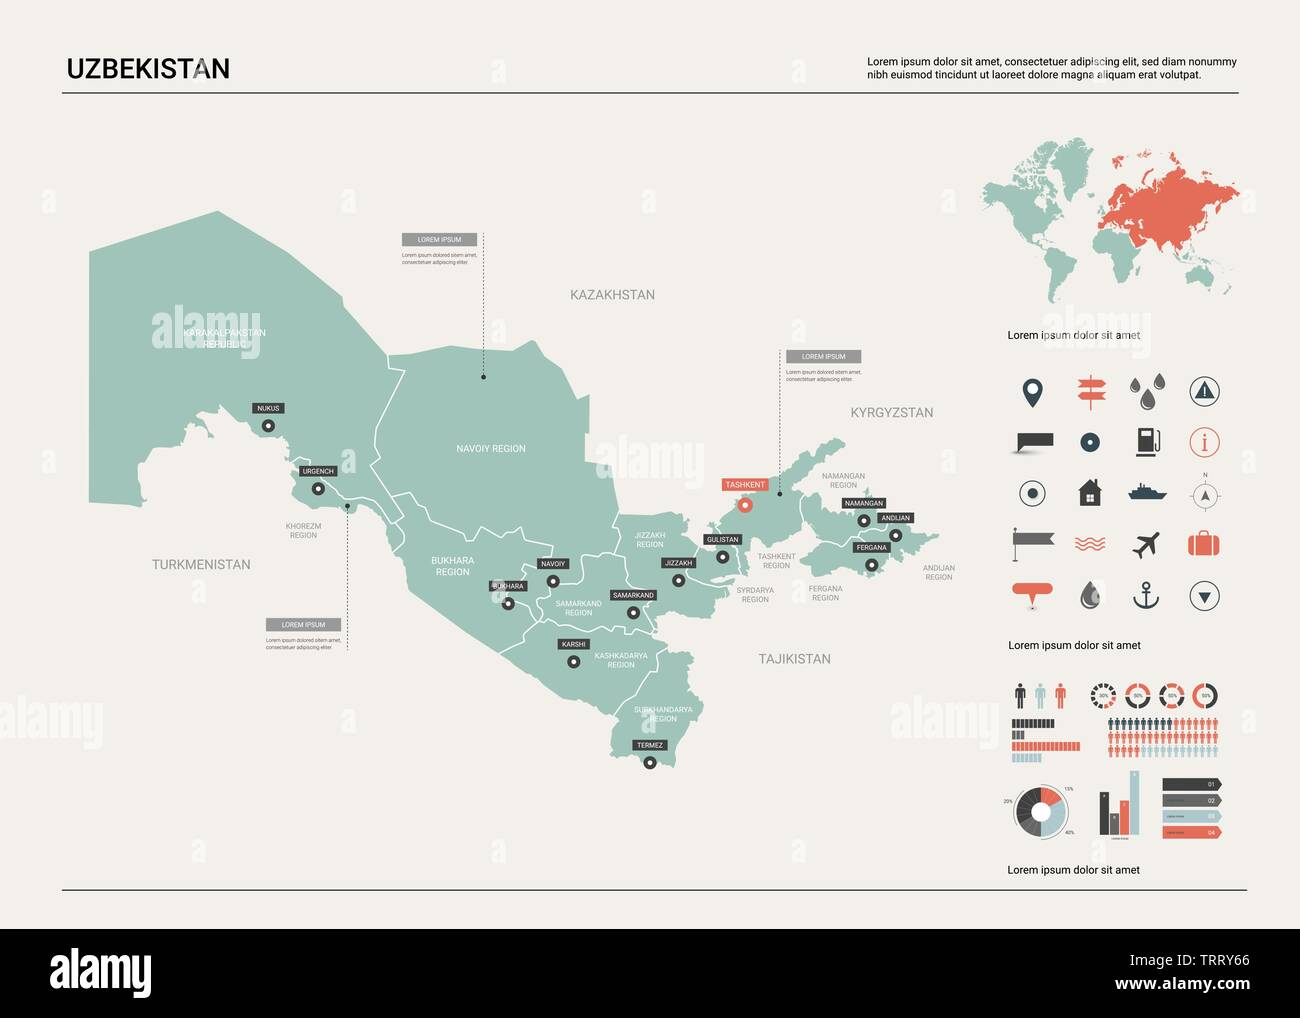 Image of: Vector Map Of Uzbekistan Country Map With Division Cities And Capital Tashkent Political Map World Map Infographic Elements Stock Vector Image Art Alamy